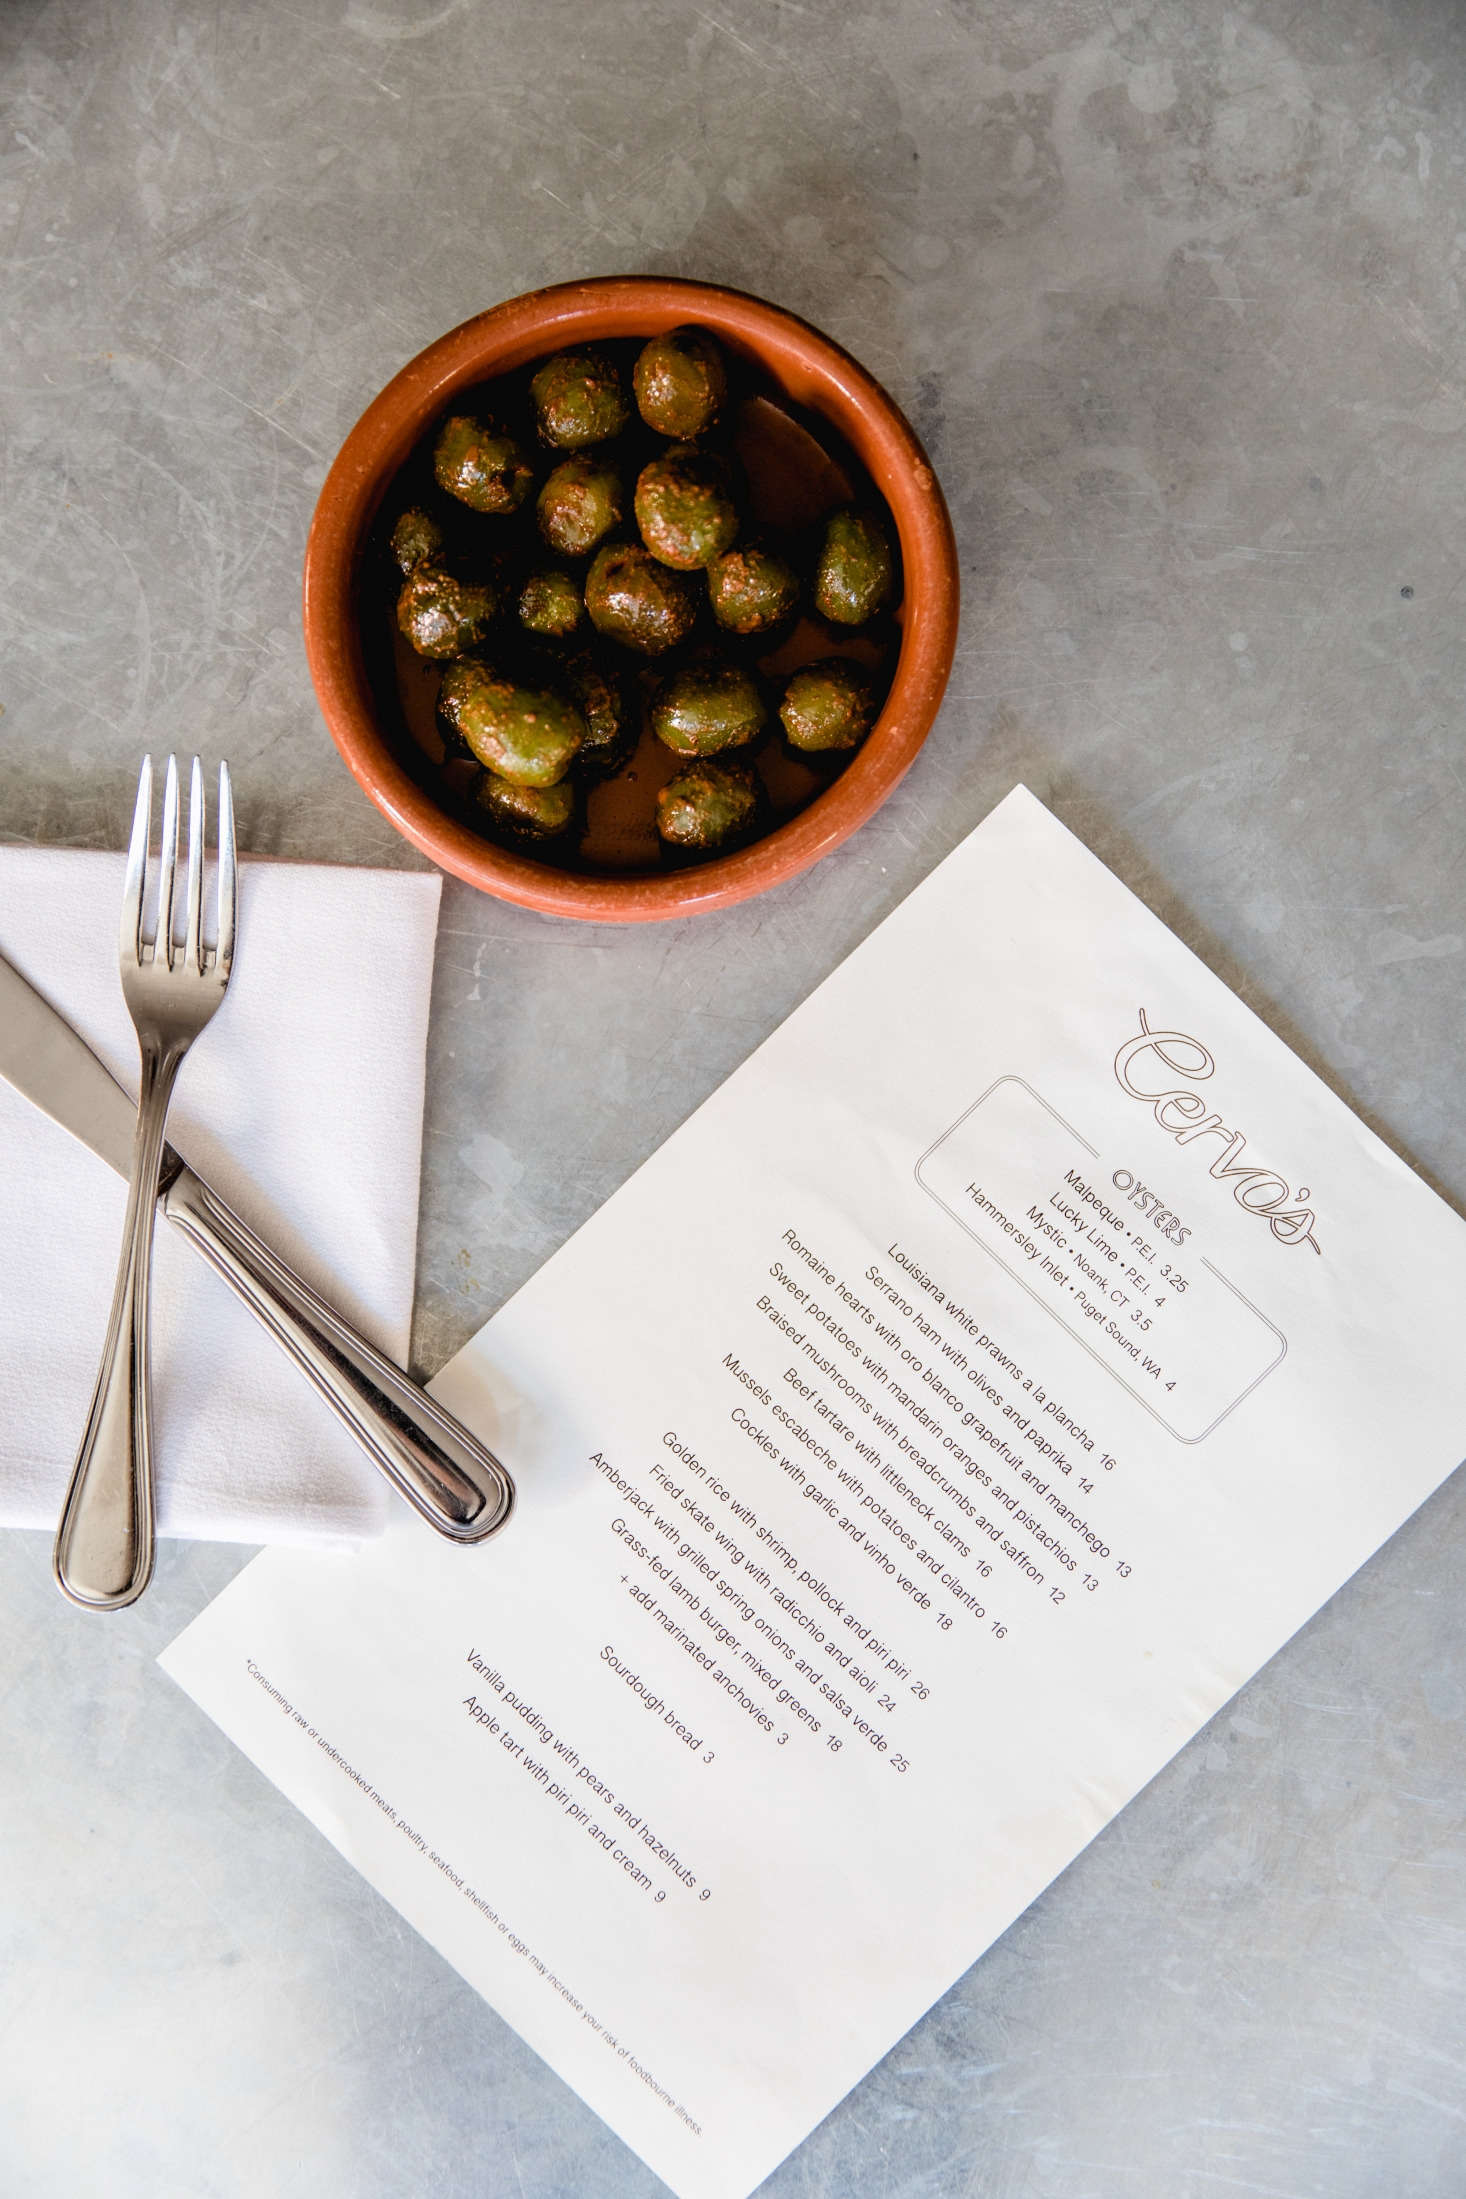 The restaurant serves small dishes—like warm olives with lemon zest—in terracotta dishes called cazuelas from Spain, imported from Despaña.